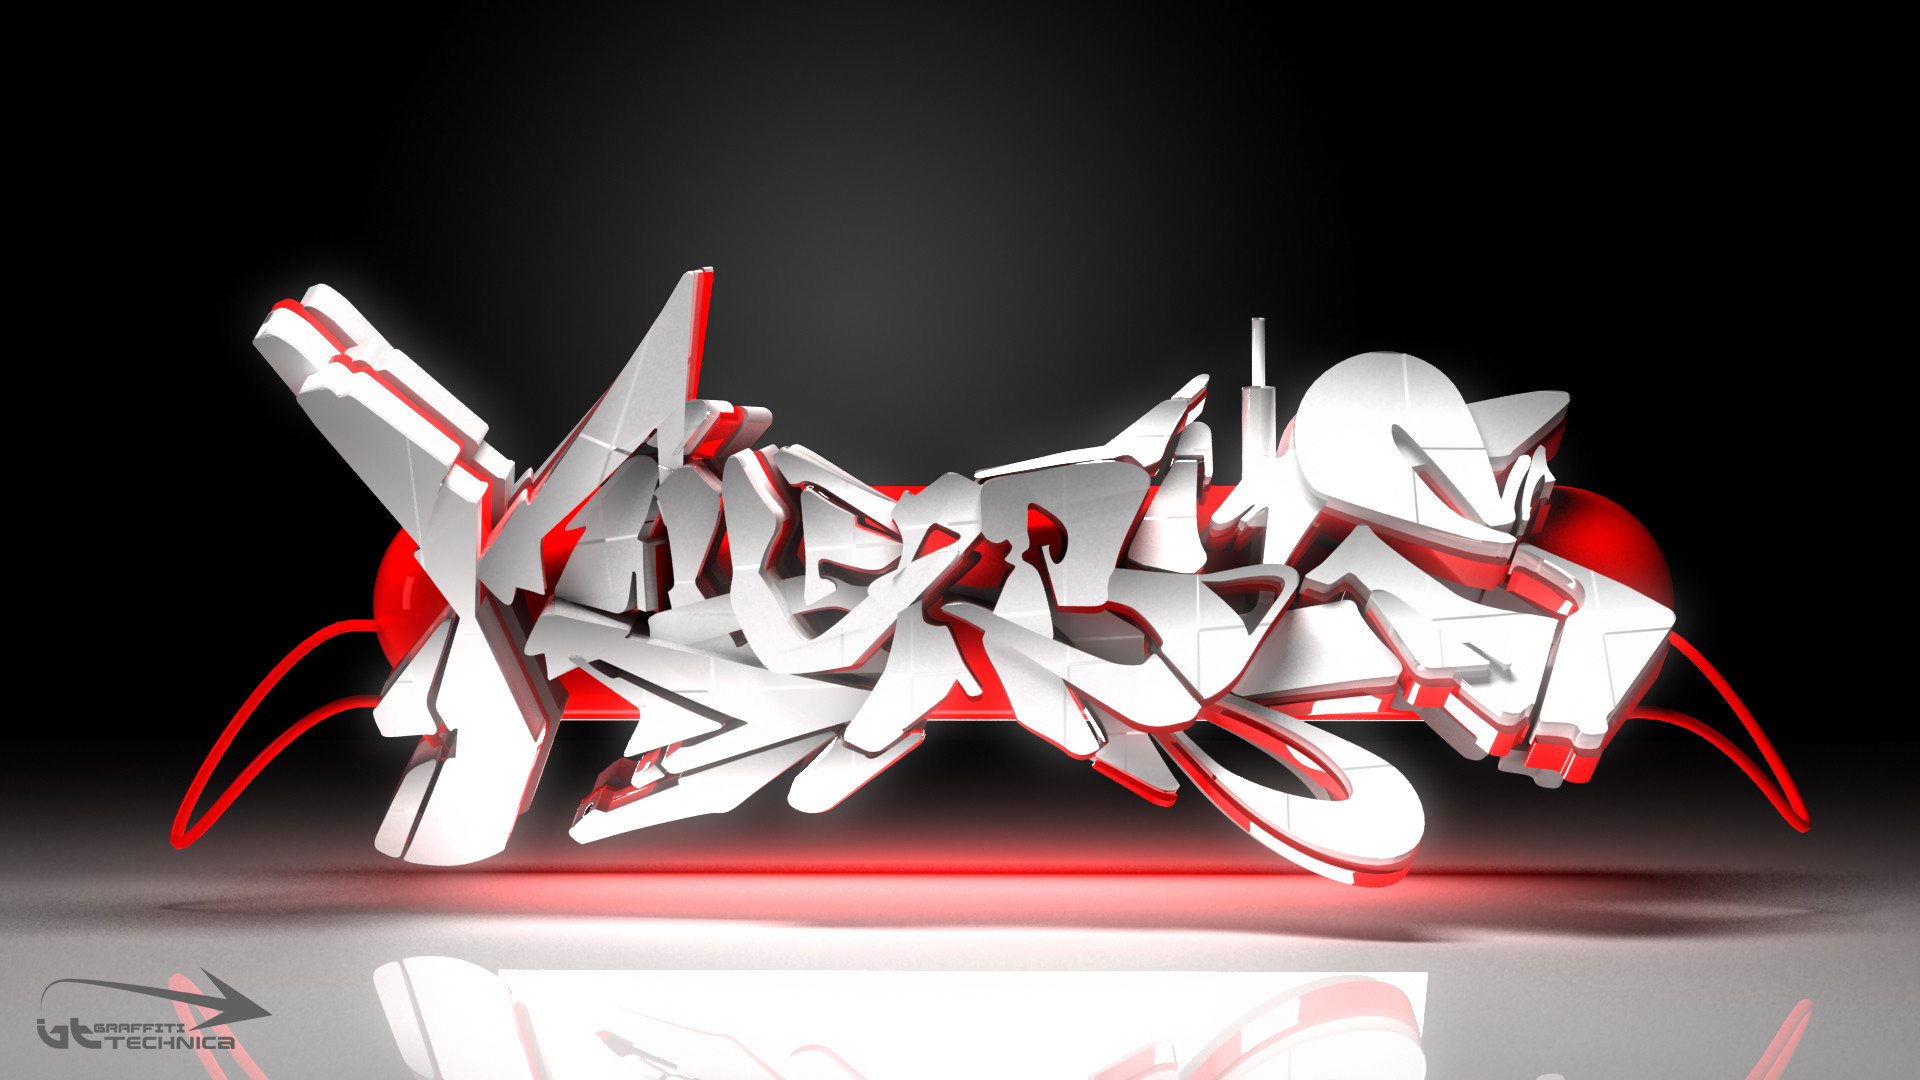 3D Graffiti Wallpapers 76 Images